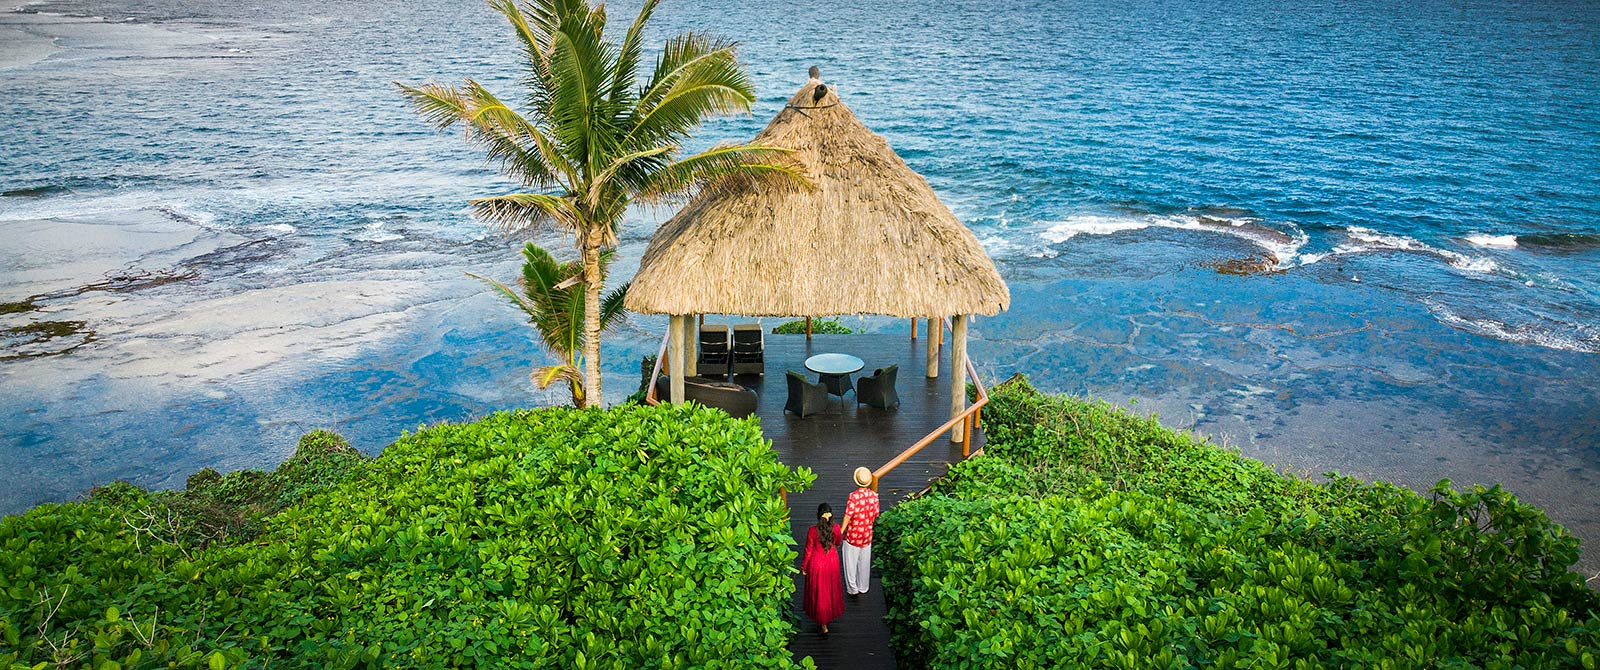 Tropical Ocean Views at Namale Resort & Spa Fiji - Active Nature Retreat Package